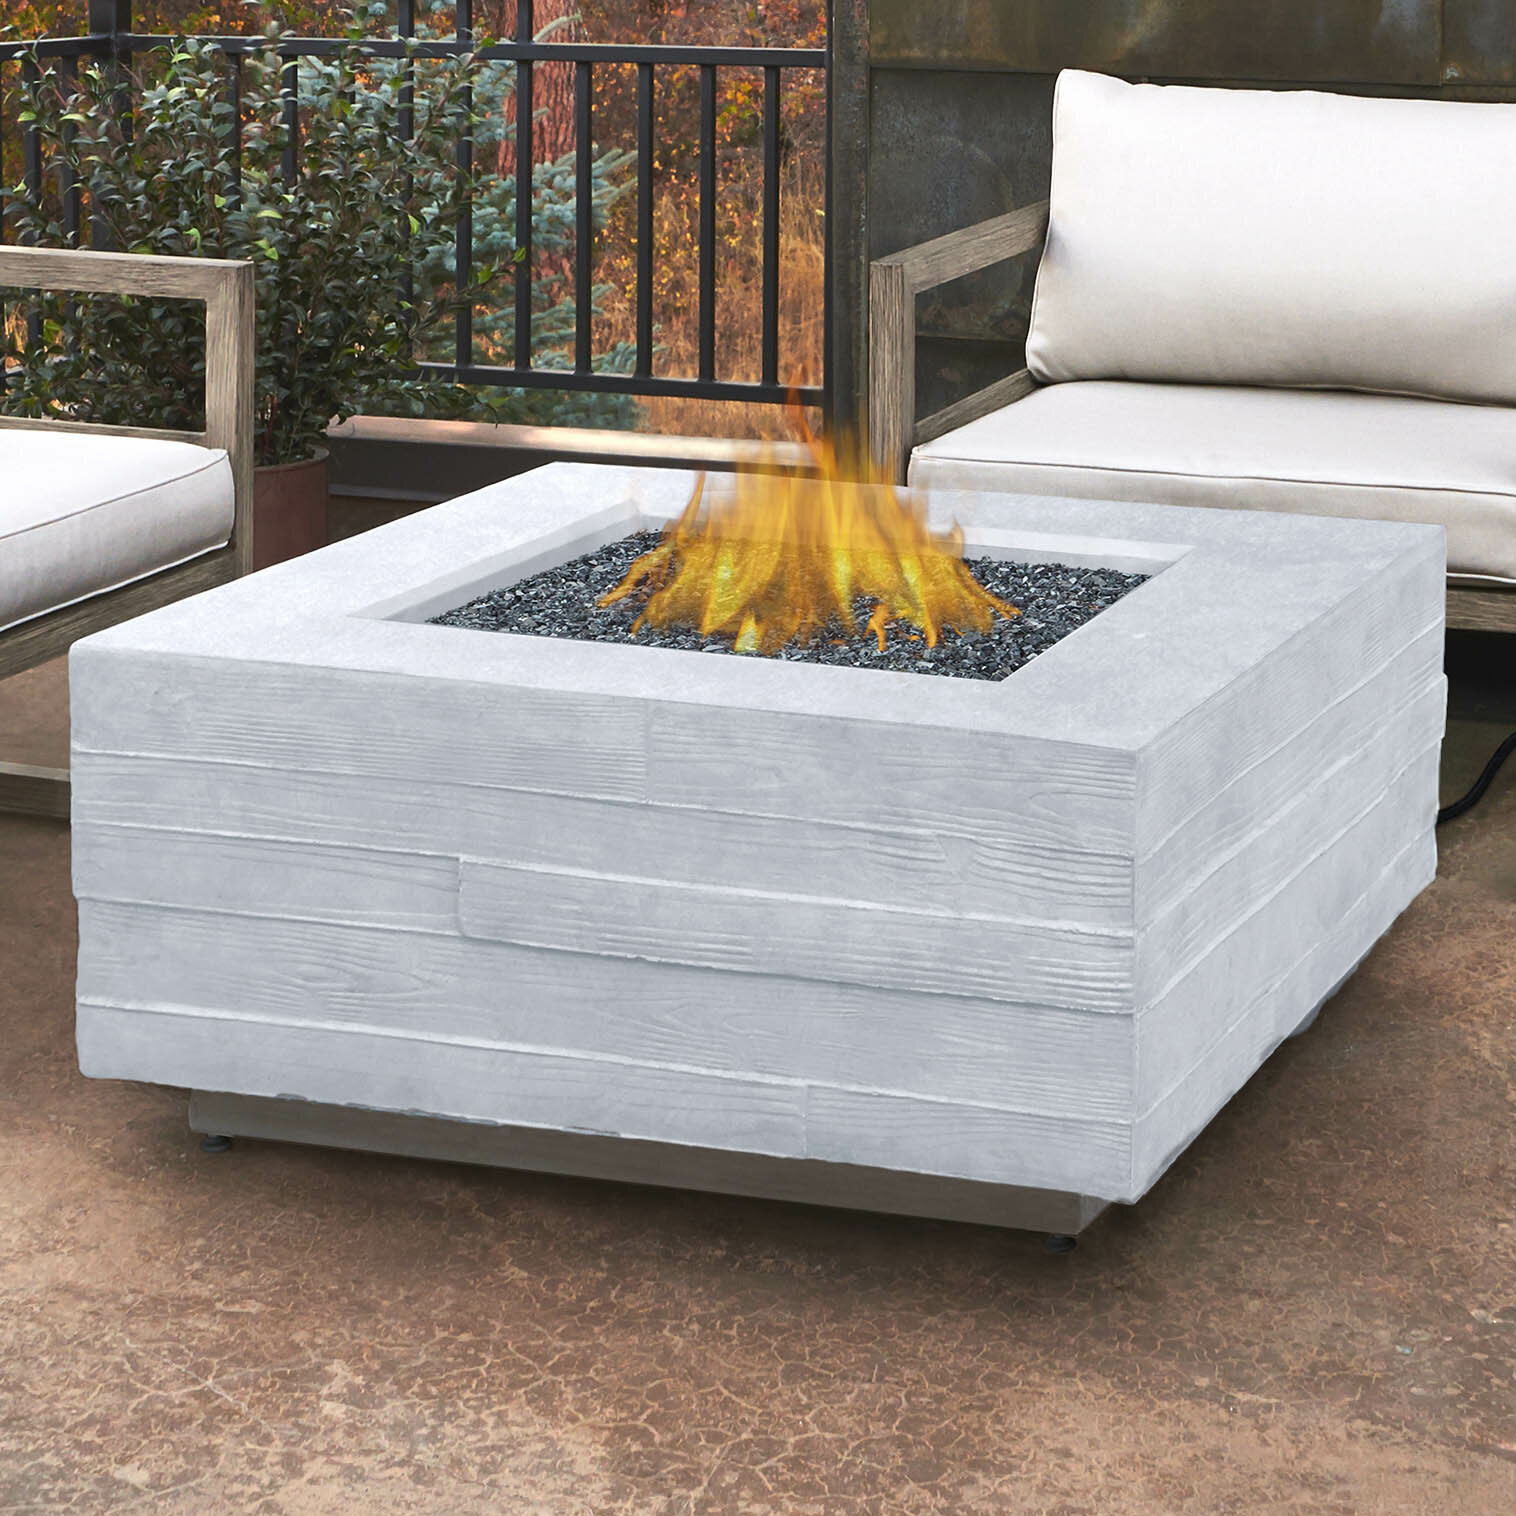 Real Flame Board Form Concrete Propane Fire Pit Table | Wayfair on friedrich control board, sub zero control board, siemens control board, whirlpool control board, american standard control board, pioneer control board, fisher paykel control board, scotsman control board, carrier control board, general electric control board, kenmore control board, nintendo control board, frigidaire control board, hoover control board, coleman control board, haier control board, jenn air control board, danby control board, honeywell control board, magic chef control board,